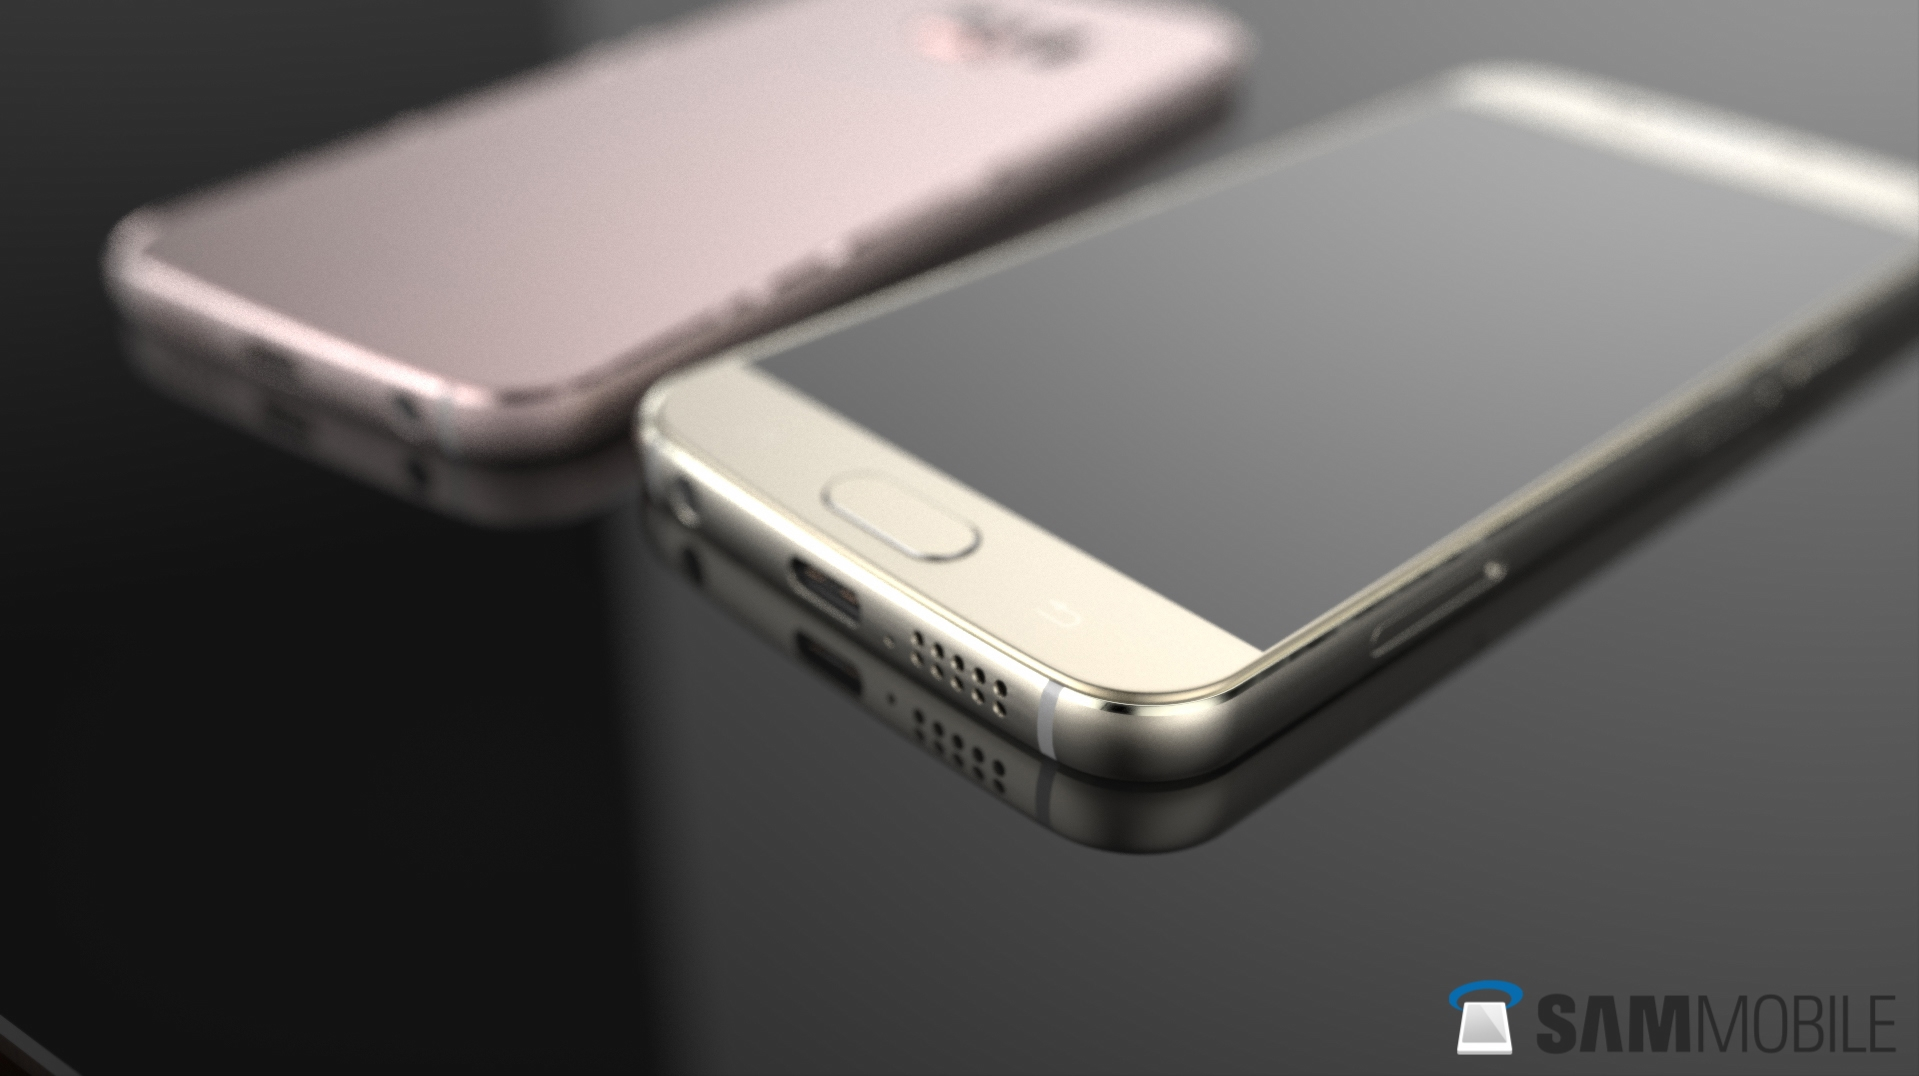 Samsung Galaxy S7 Concept Represents The Latest Rumors